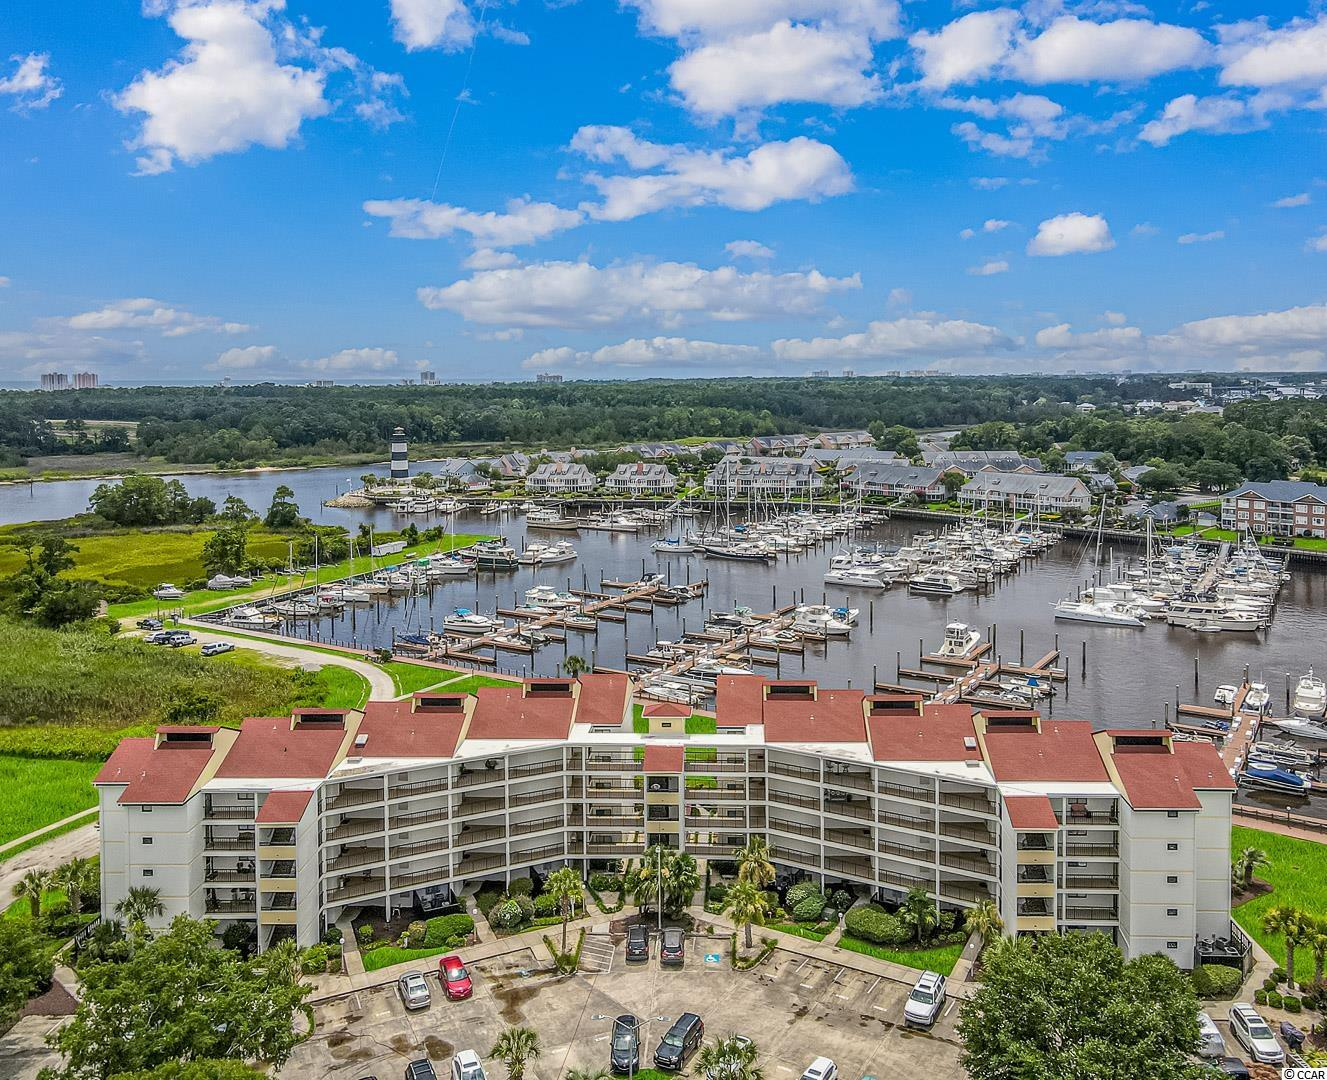 If you're looking for a stunning upgraded condo over looking the Intracoastal Waterway and Marina, look no further. This spacious third floor unit with elevator has been updated and has breathtaking views of the surrounding areas. The property features a boat slip as well for the boaters out there. The unit itself features upgraded flooring, paint, fixtures, master bathroom and more. Coquina Harbor is located right in the heart of Little River with access to shopping, medical, grocery stores and just minutes from Cherry Grove Beach. This unit has been priced VERY well and will be gone quickly. You have to see it in person to appreciate the work done, the view and the overall location of this beautiful condo. Schedule a showing today!!